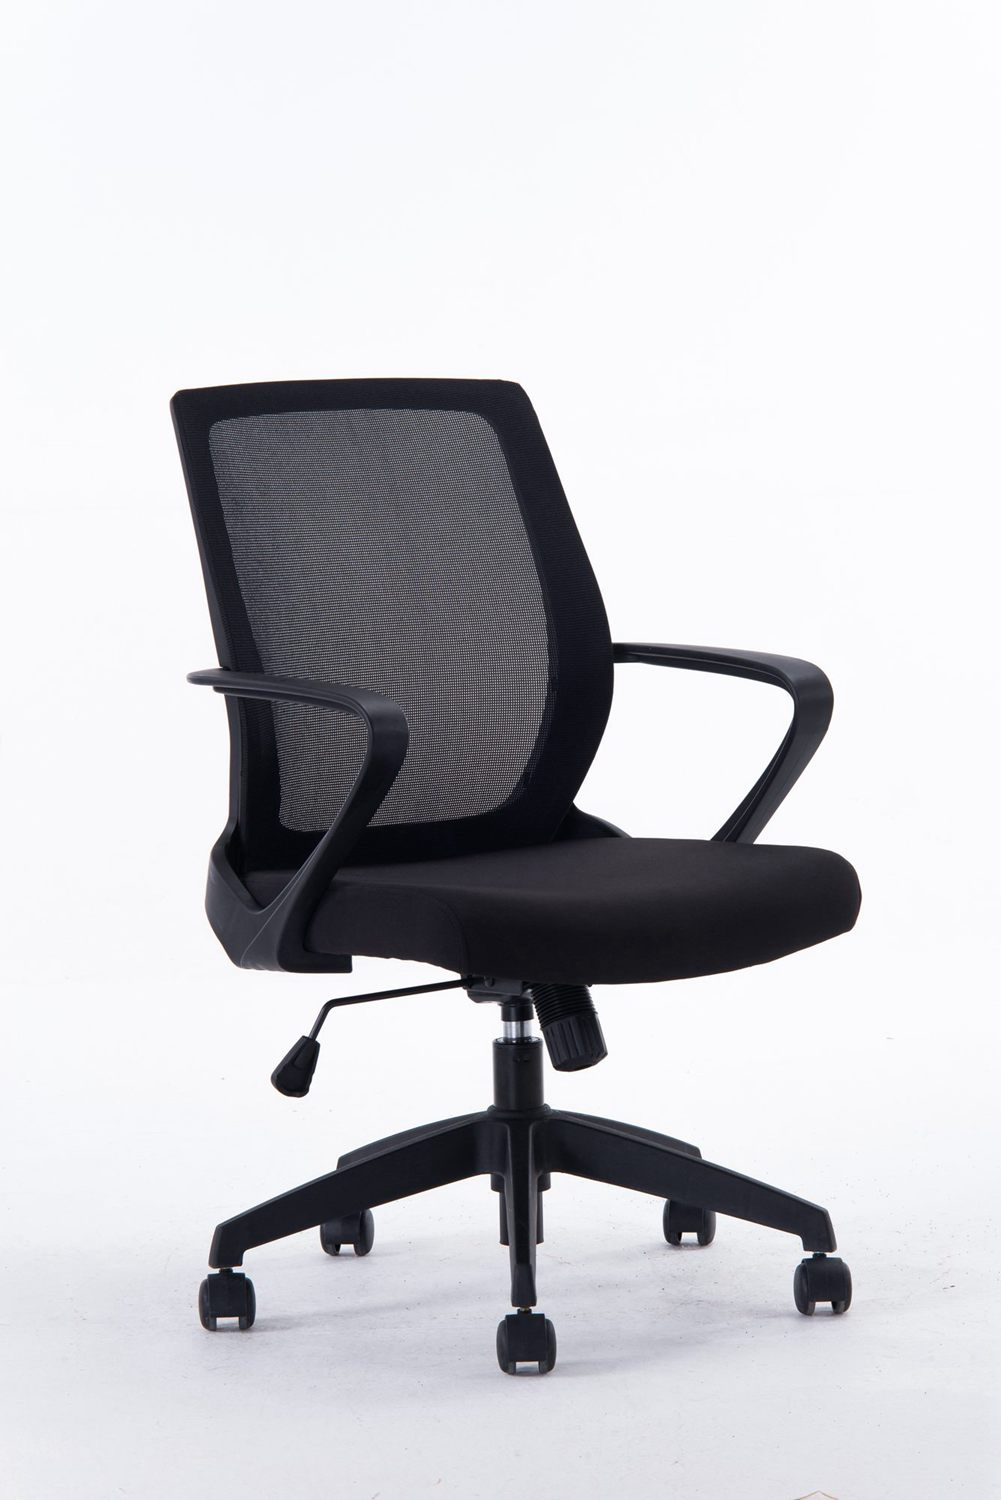 office chair toronto resistance exercise system lfco mesh map furniture new used 208m 0 jpg